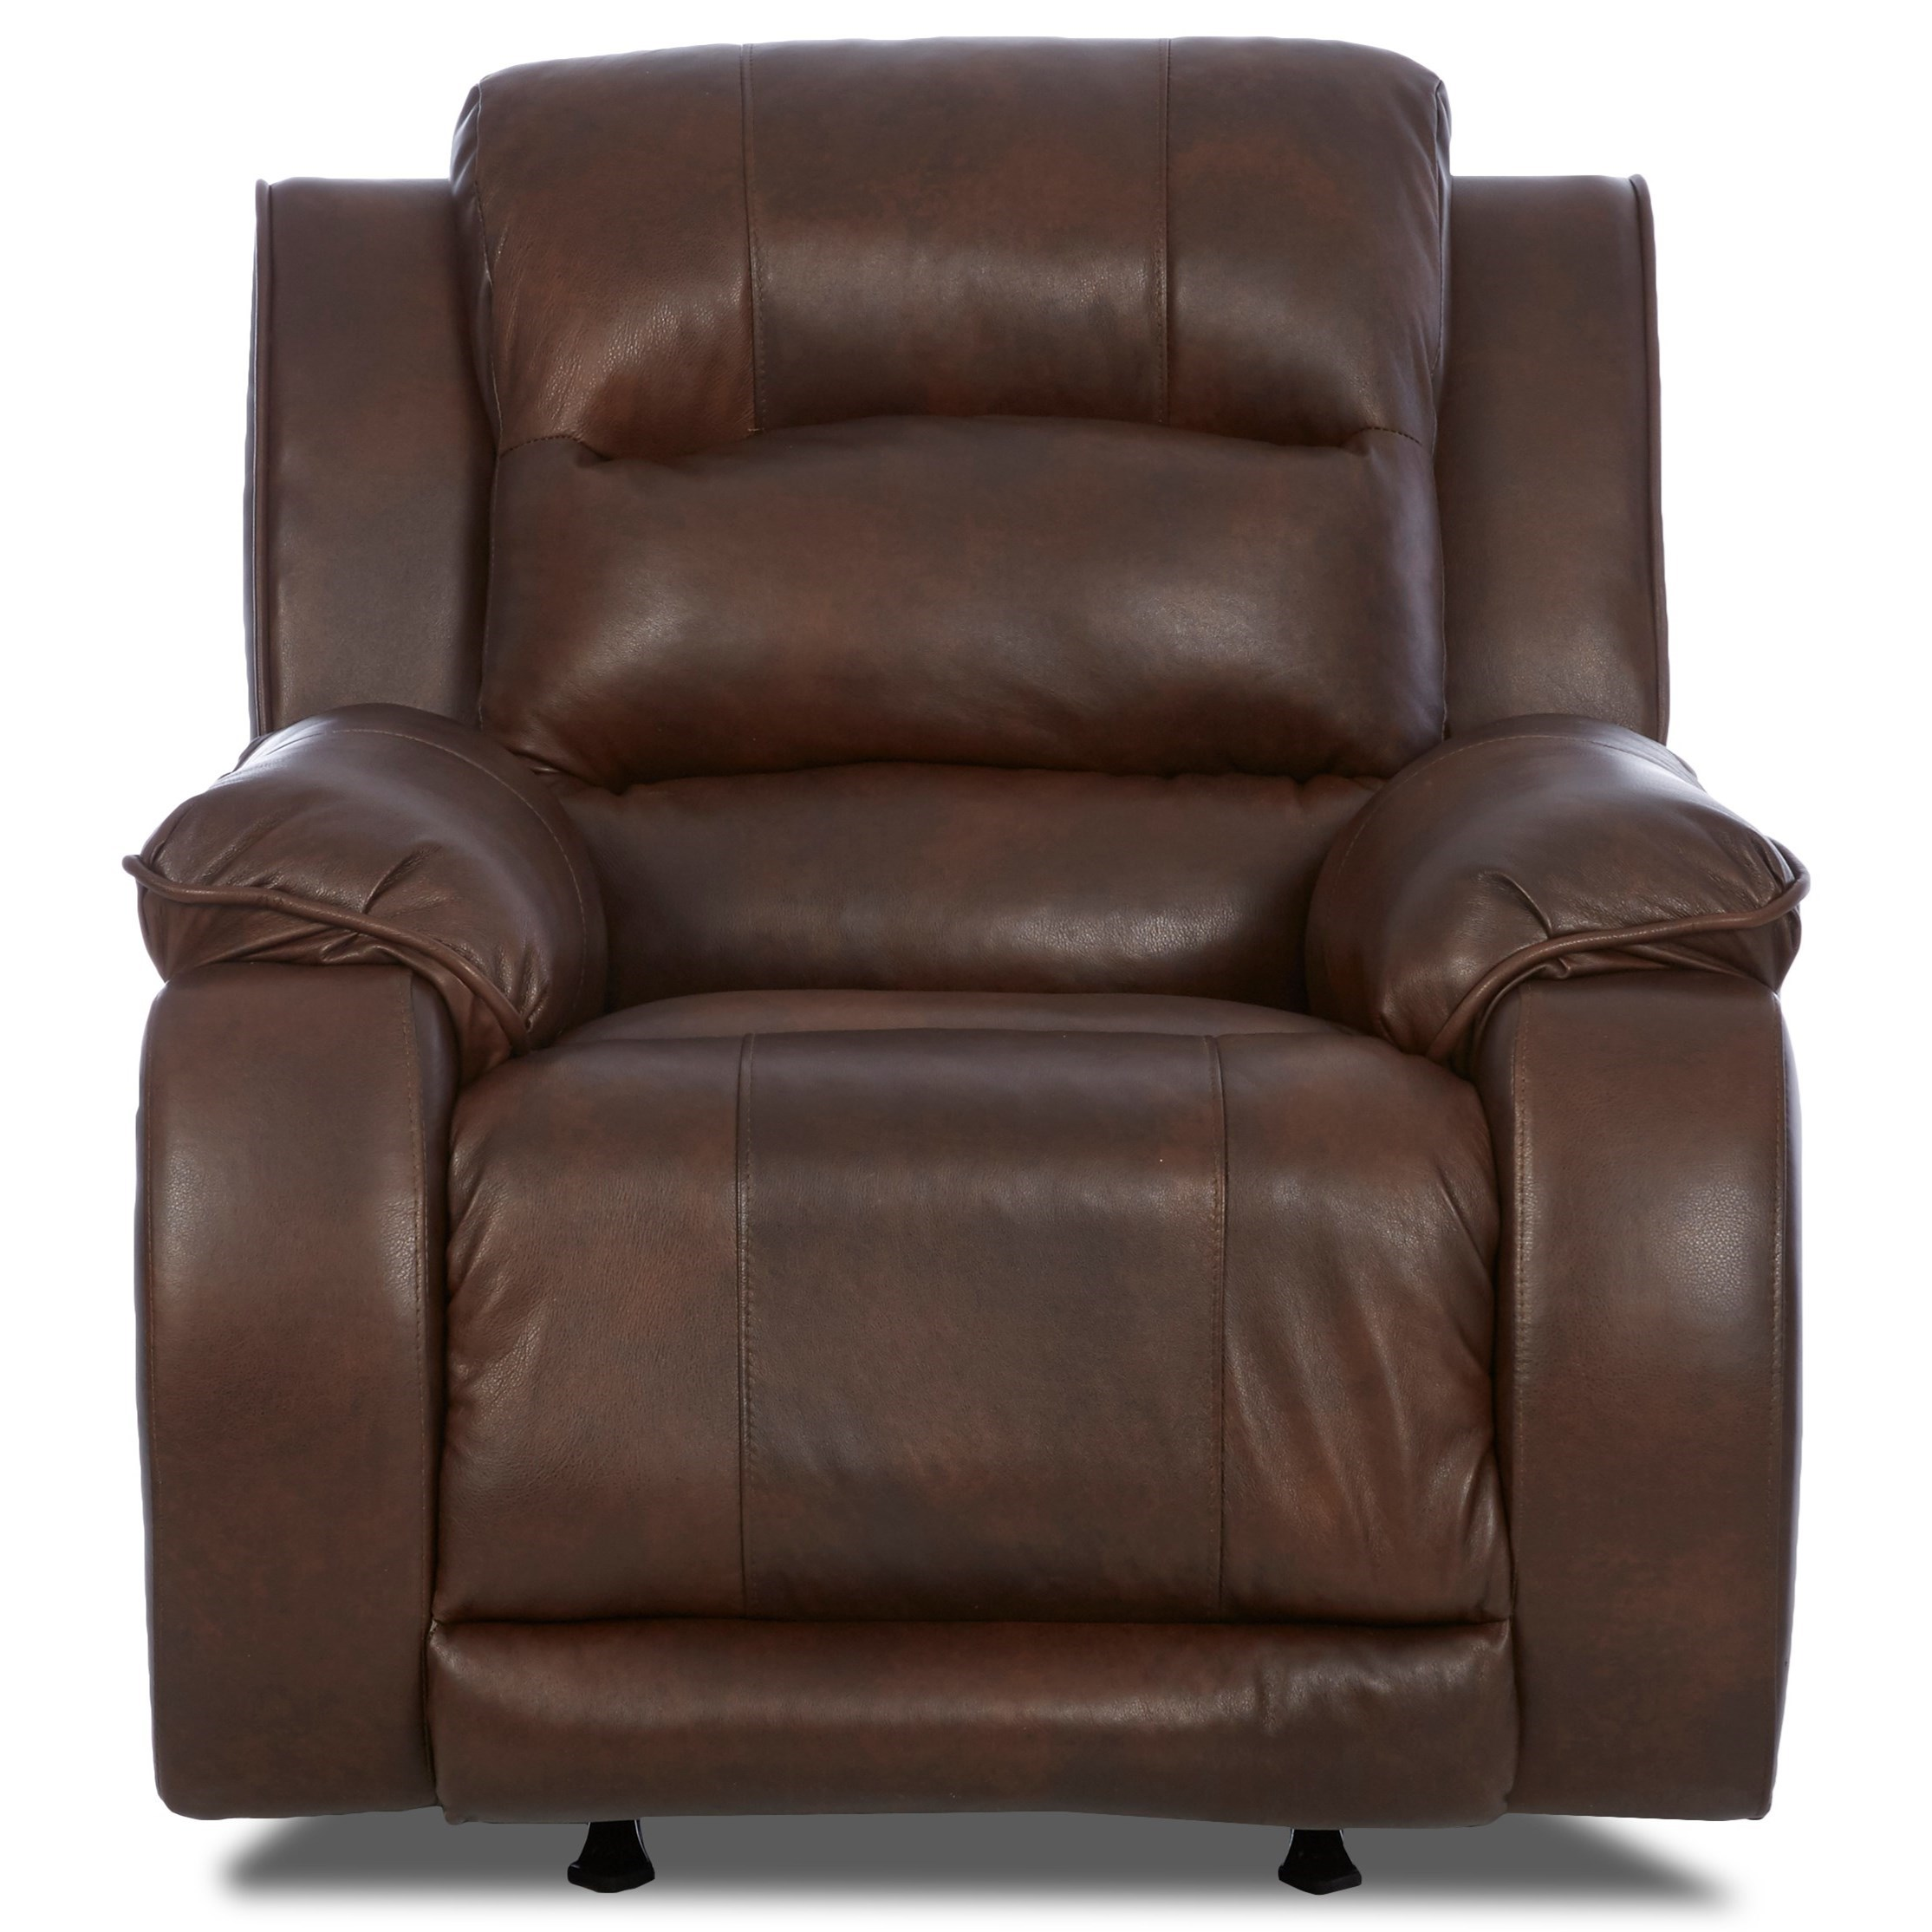 Power Recliner with Power Headrest and Lumbar Support